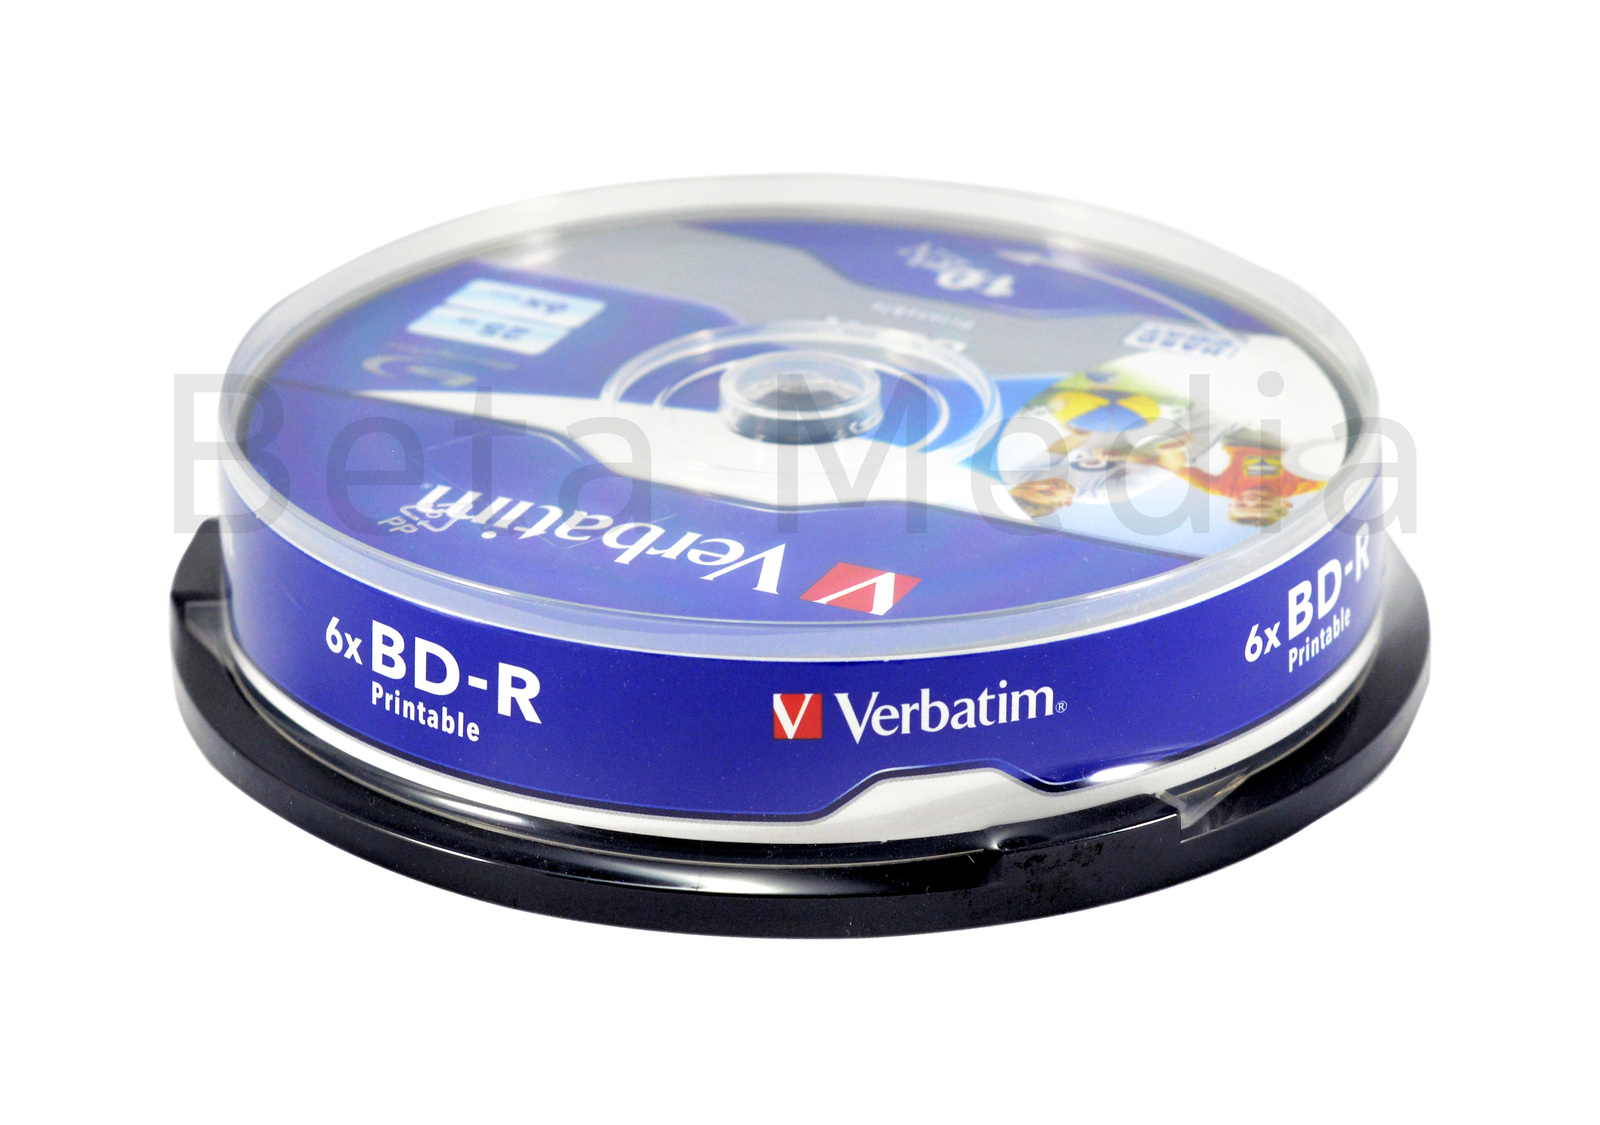 b0e792b31 Verbatim Blu ray BD-R 6x 25GB 10 disc spindle